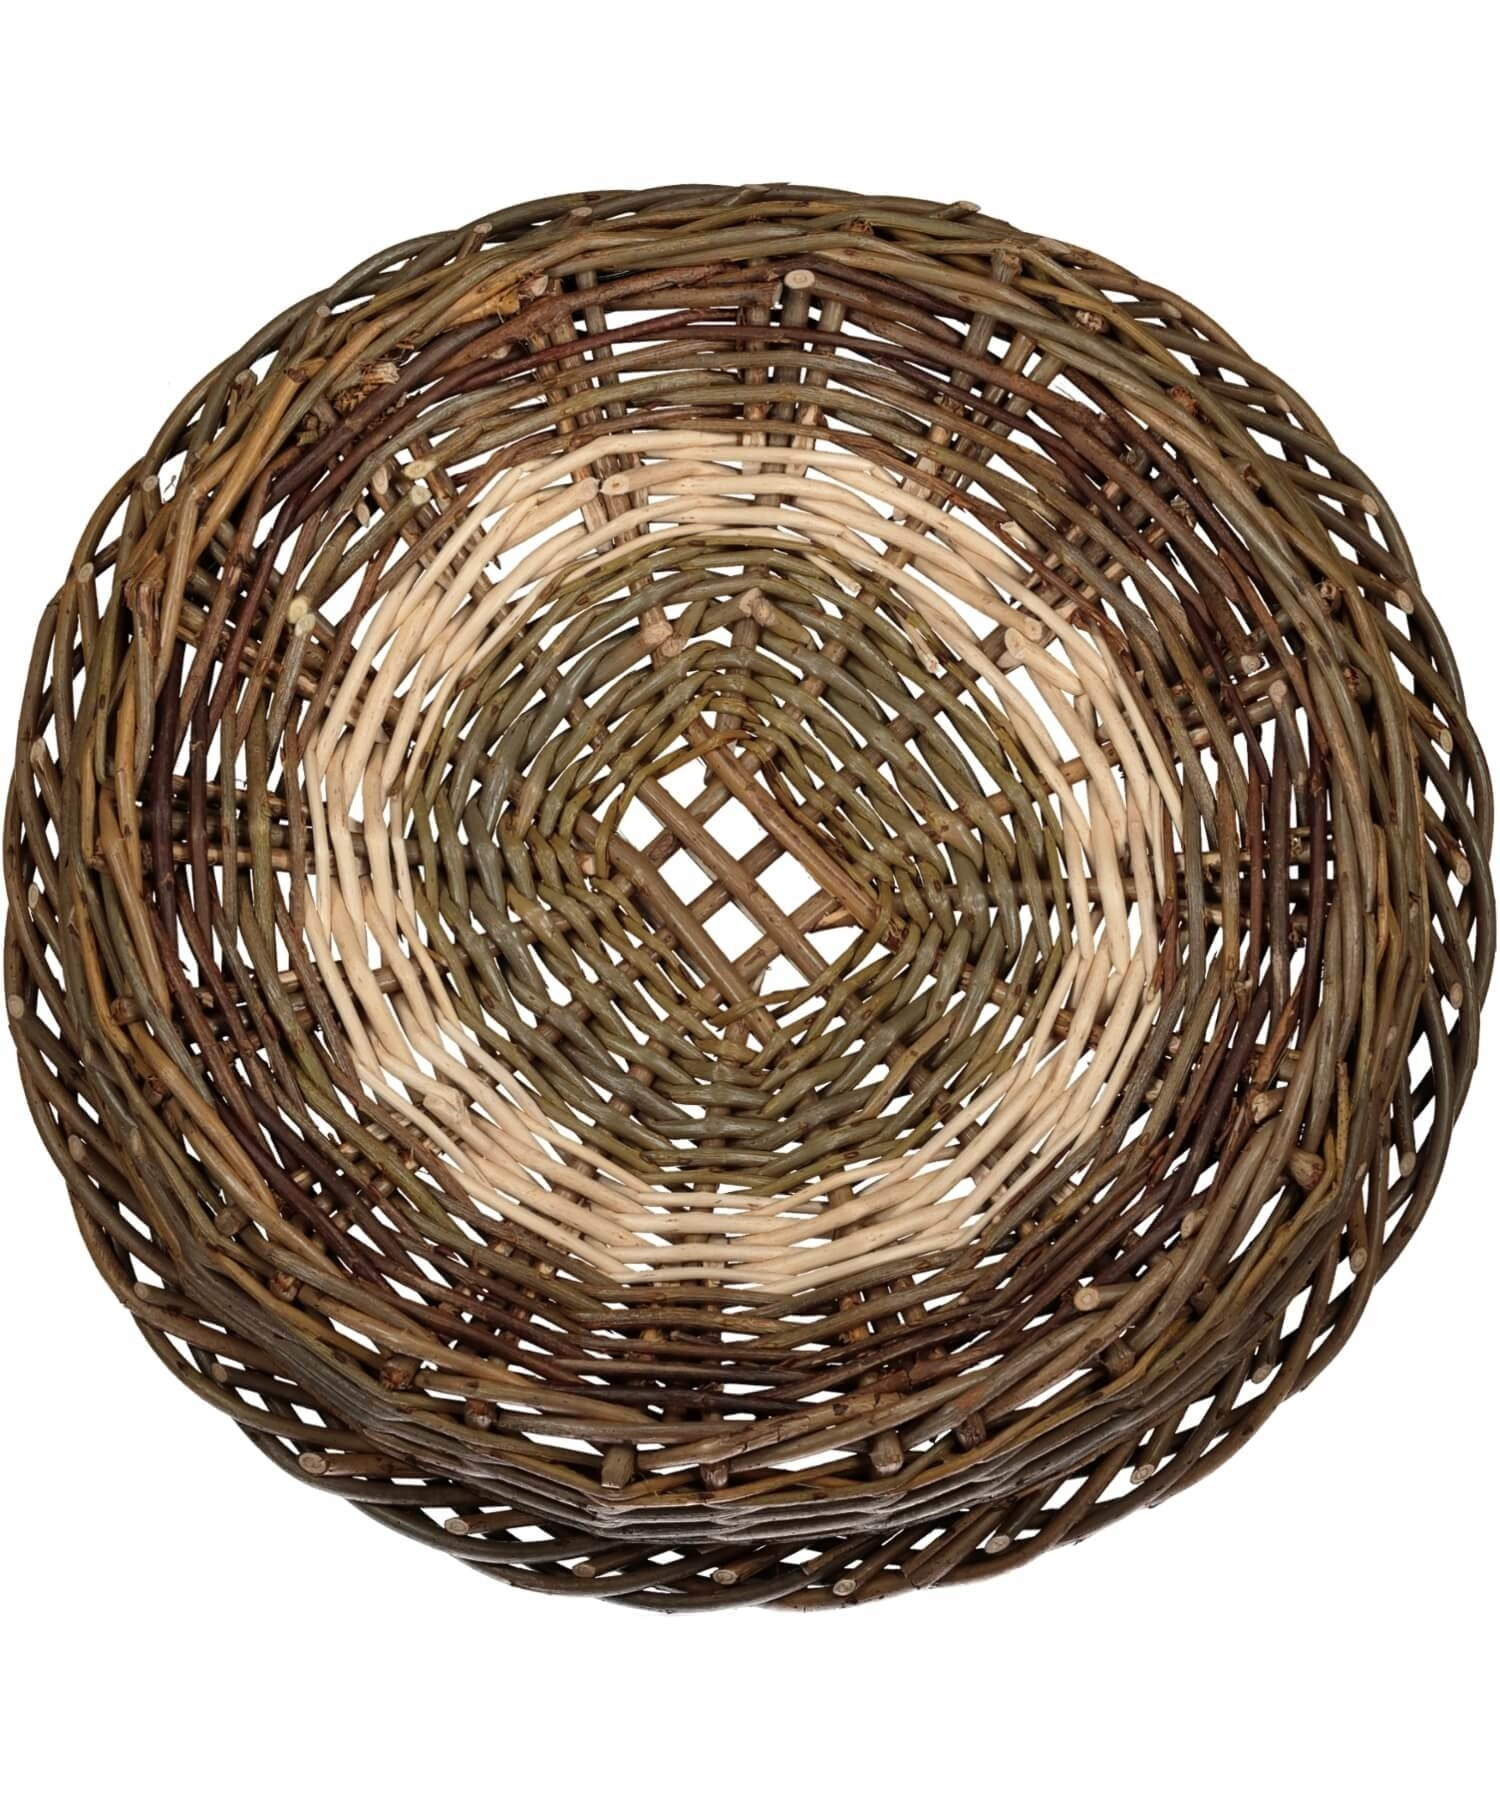 Irish Ciseog - Grid (small) Saille Baskets Wood & Slate